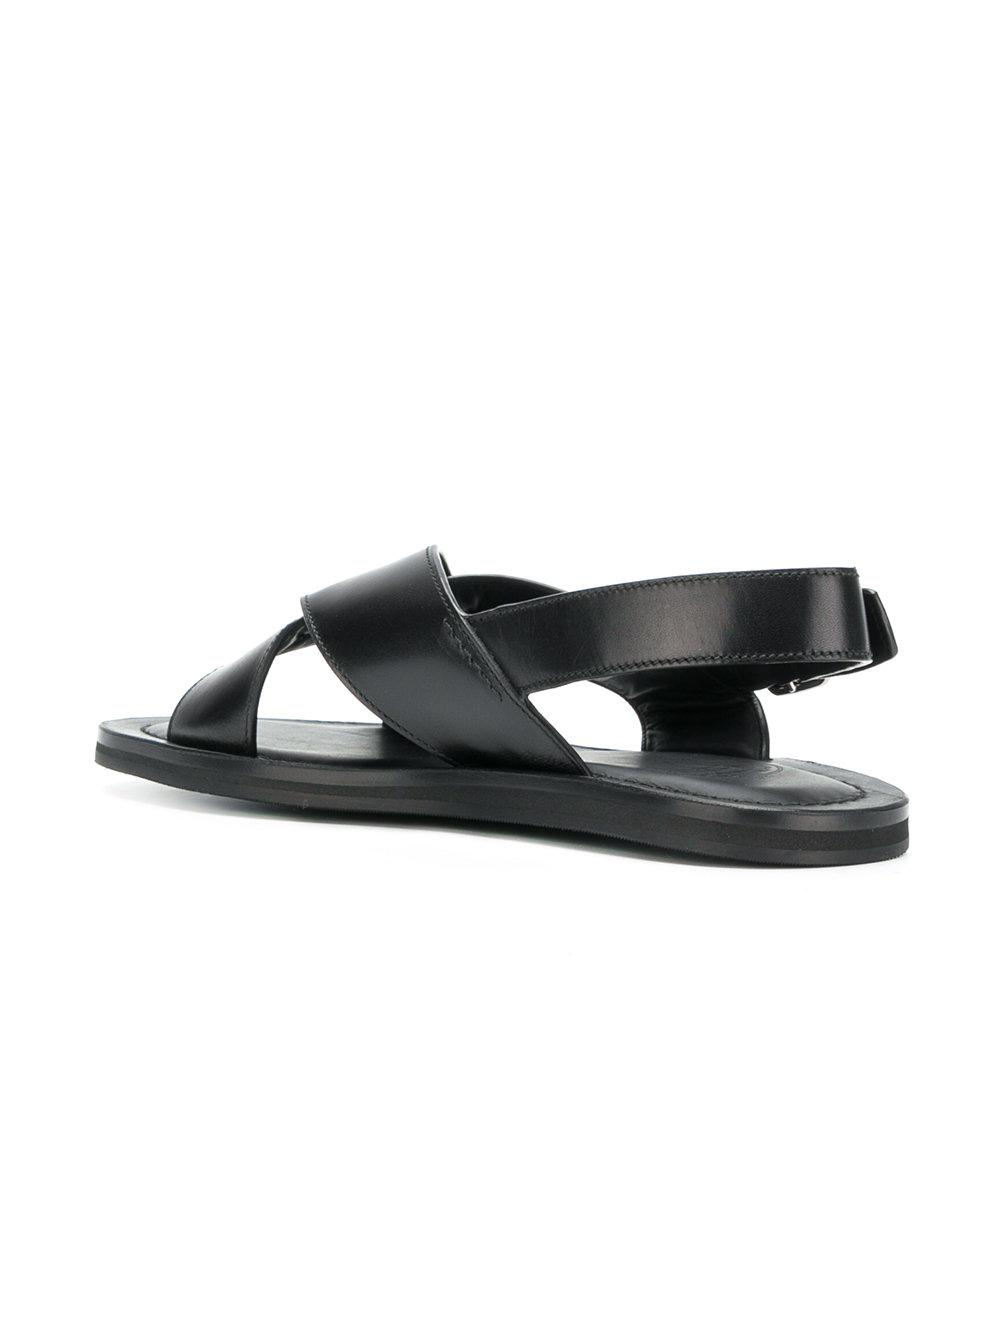 df93ee9b177816 Church s - Black Crossover Strap Sandals for Men - Lyst. View fullscreen